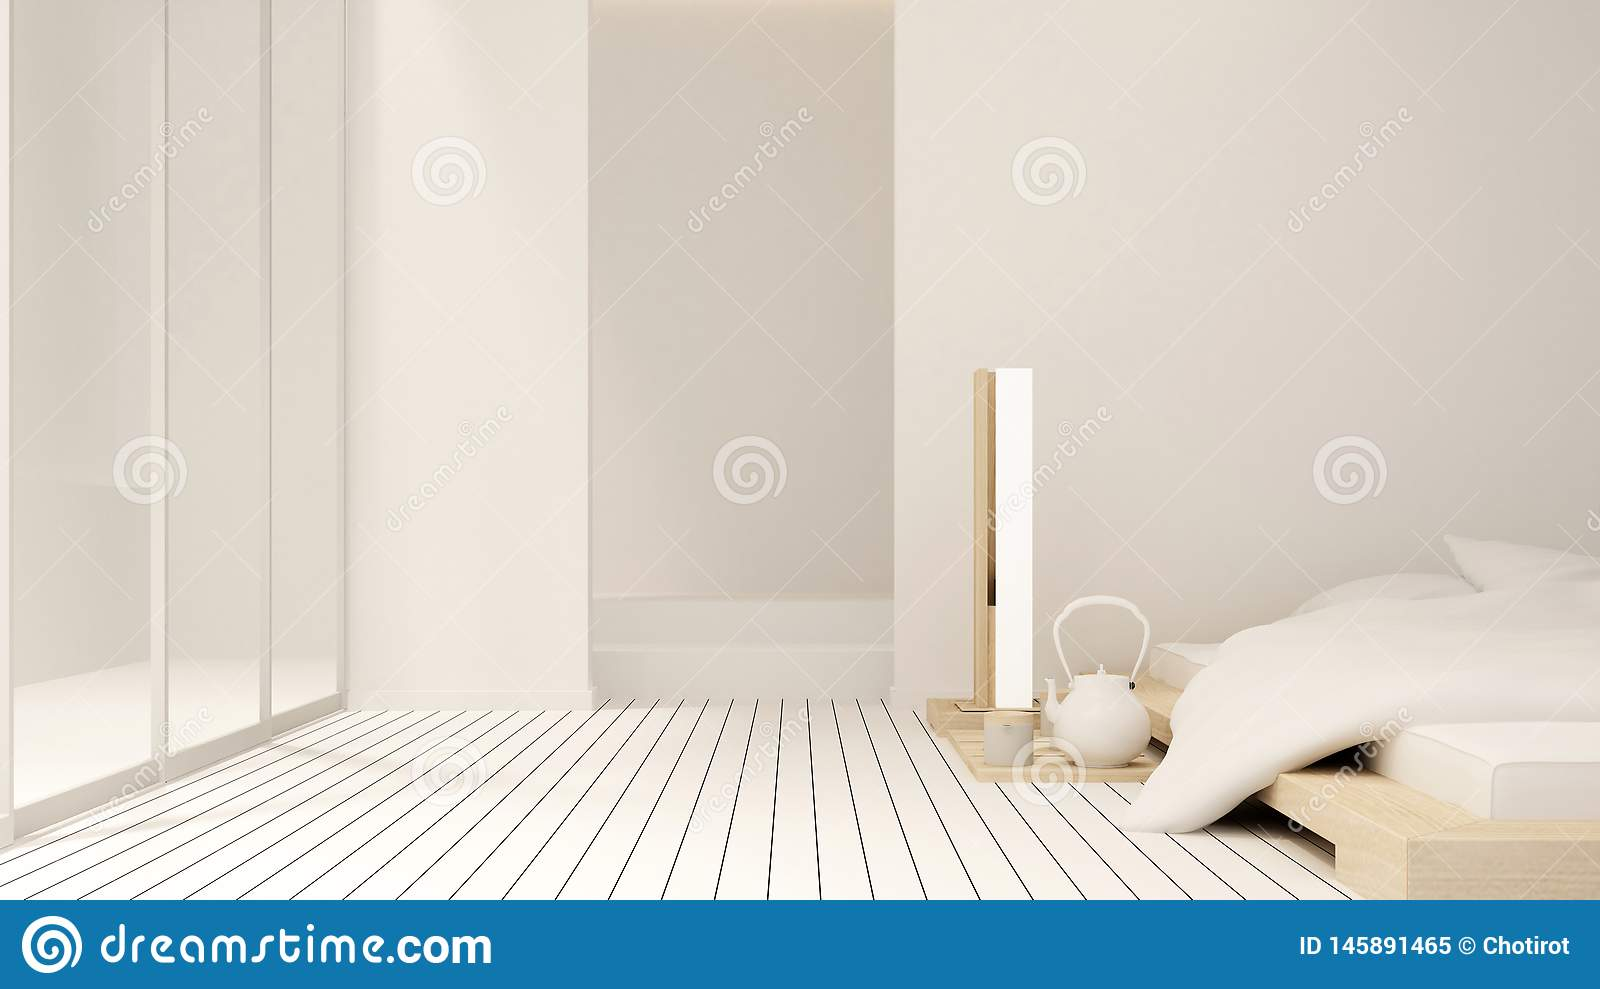 Bedroom and balcony  in apartment or hotel - Interior design - 3D Rendering royalty free stock photo